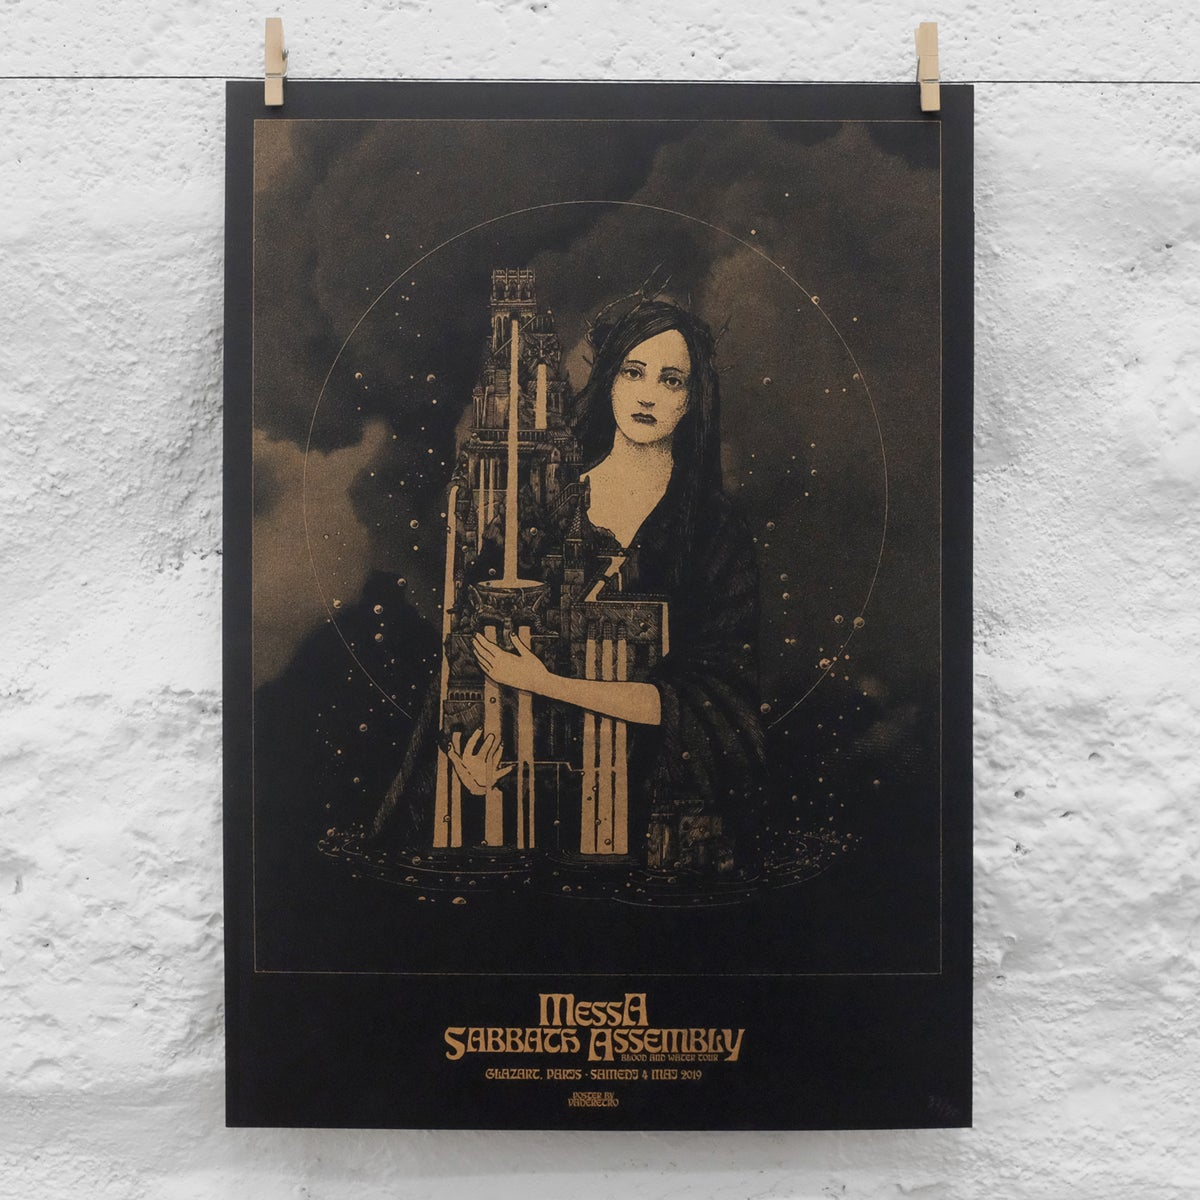 Image of MESSA & SABBATH ASSEMBLY RISOGRAPH POSTER (Paris 2018)